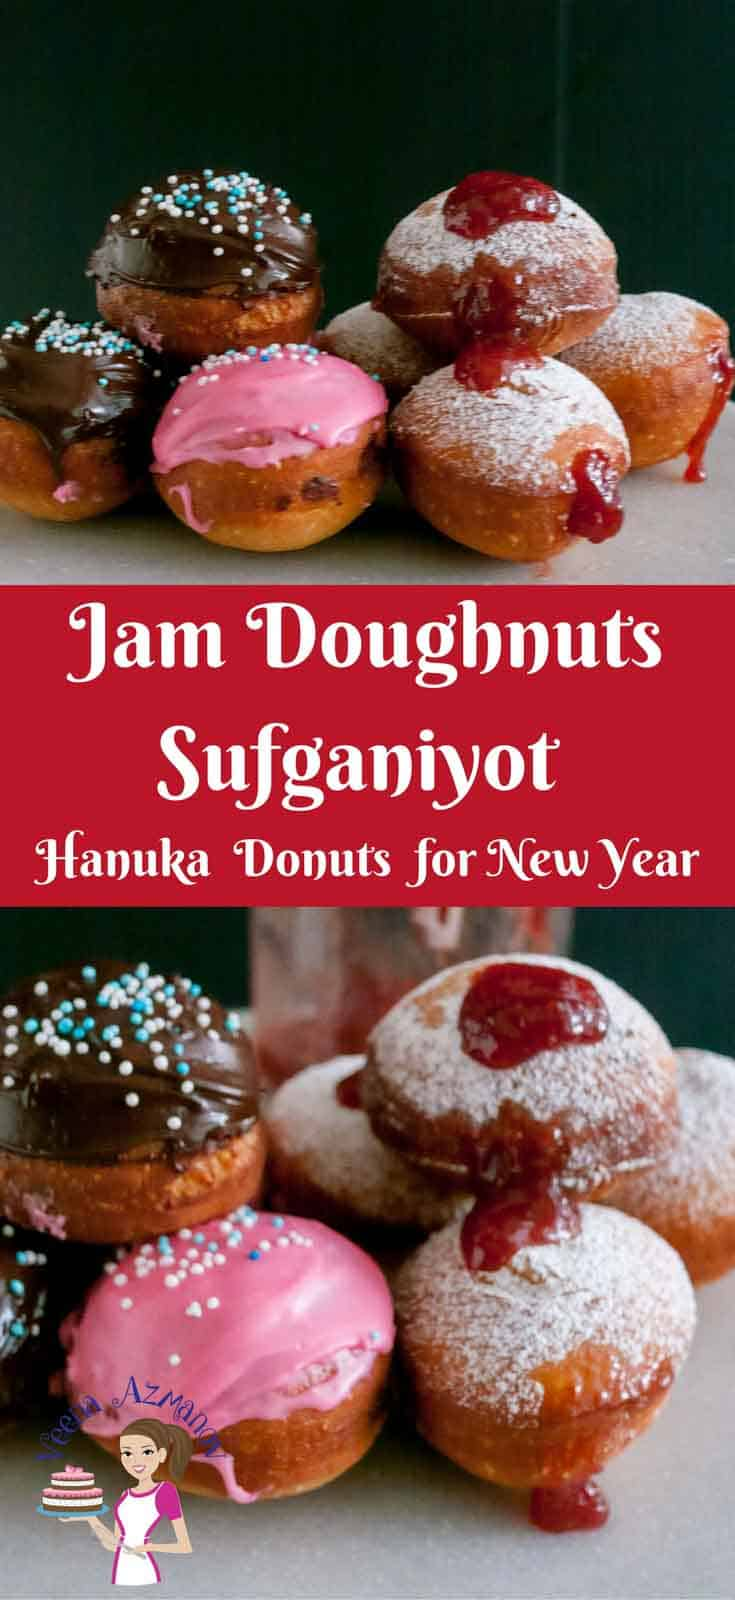 Weather you call them Jam Doughnuts, Sufganiyot, Sufganiyah, Donuts, Hanuka bread these are delicious deep fried treats. Traditionally filled with sweet jam and dusted with powder sugar but can be glazed with chocolate or other flavors #doughtnuts #donuts #jamdonuts #jamdoughnuts #sufganiyot #sufganiyots #hanukadonuts #hauka #bread #pastry #jampastry #homemade